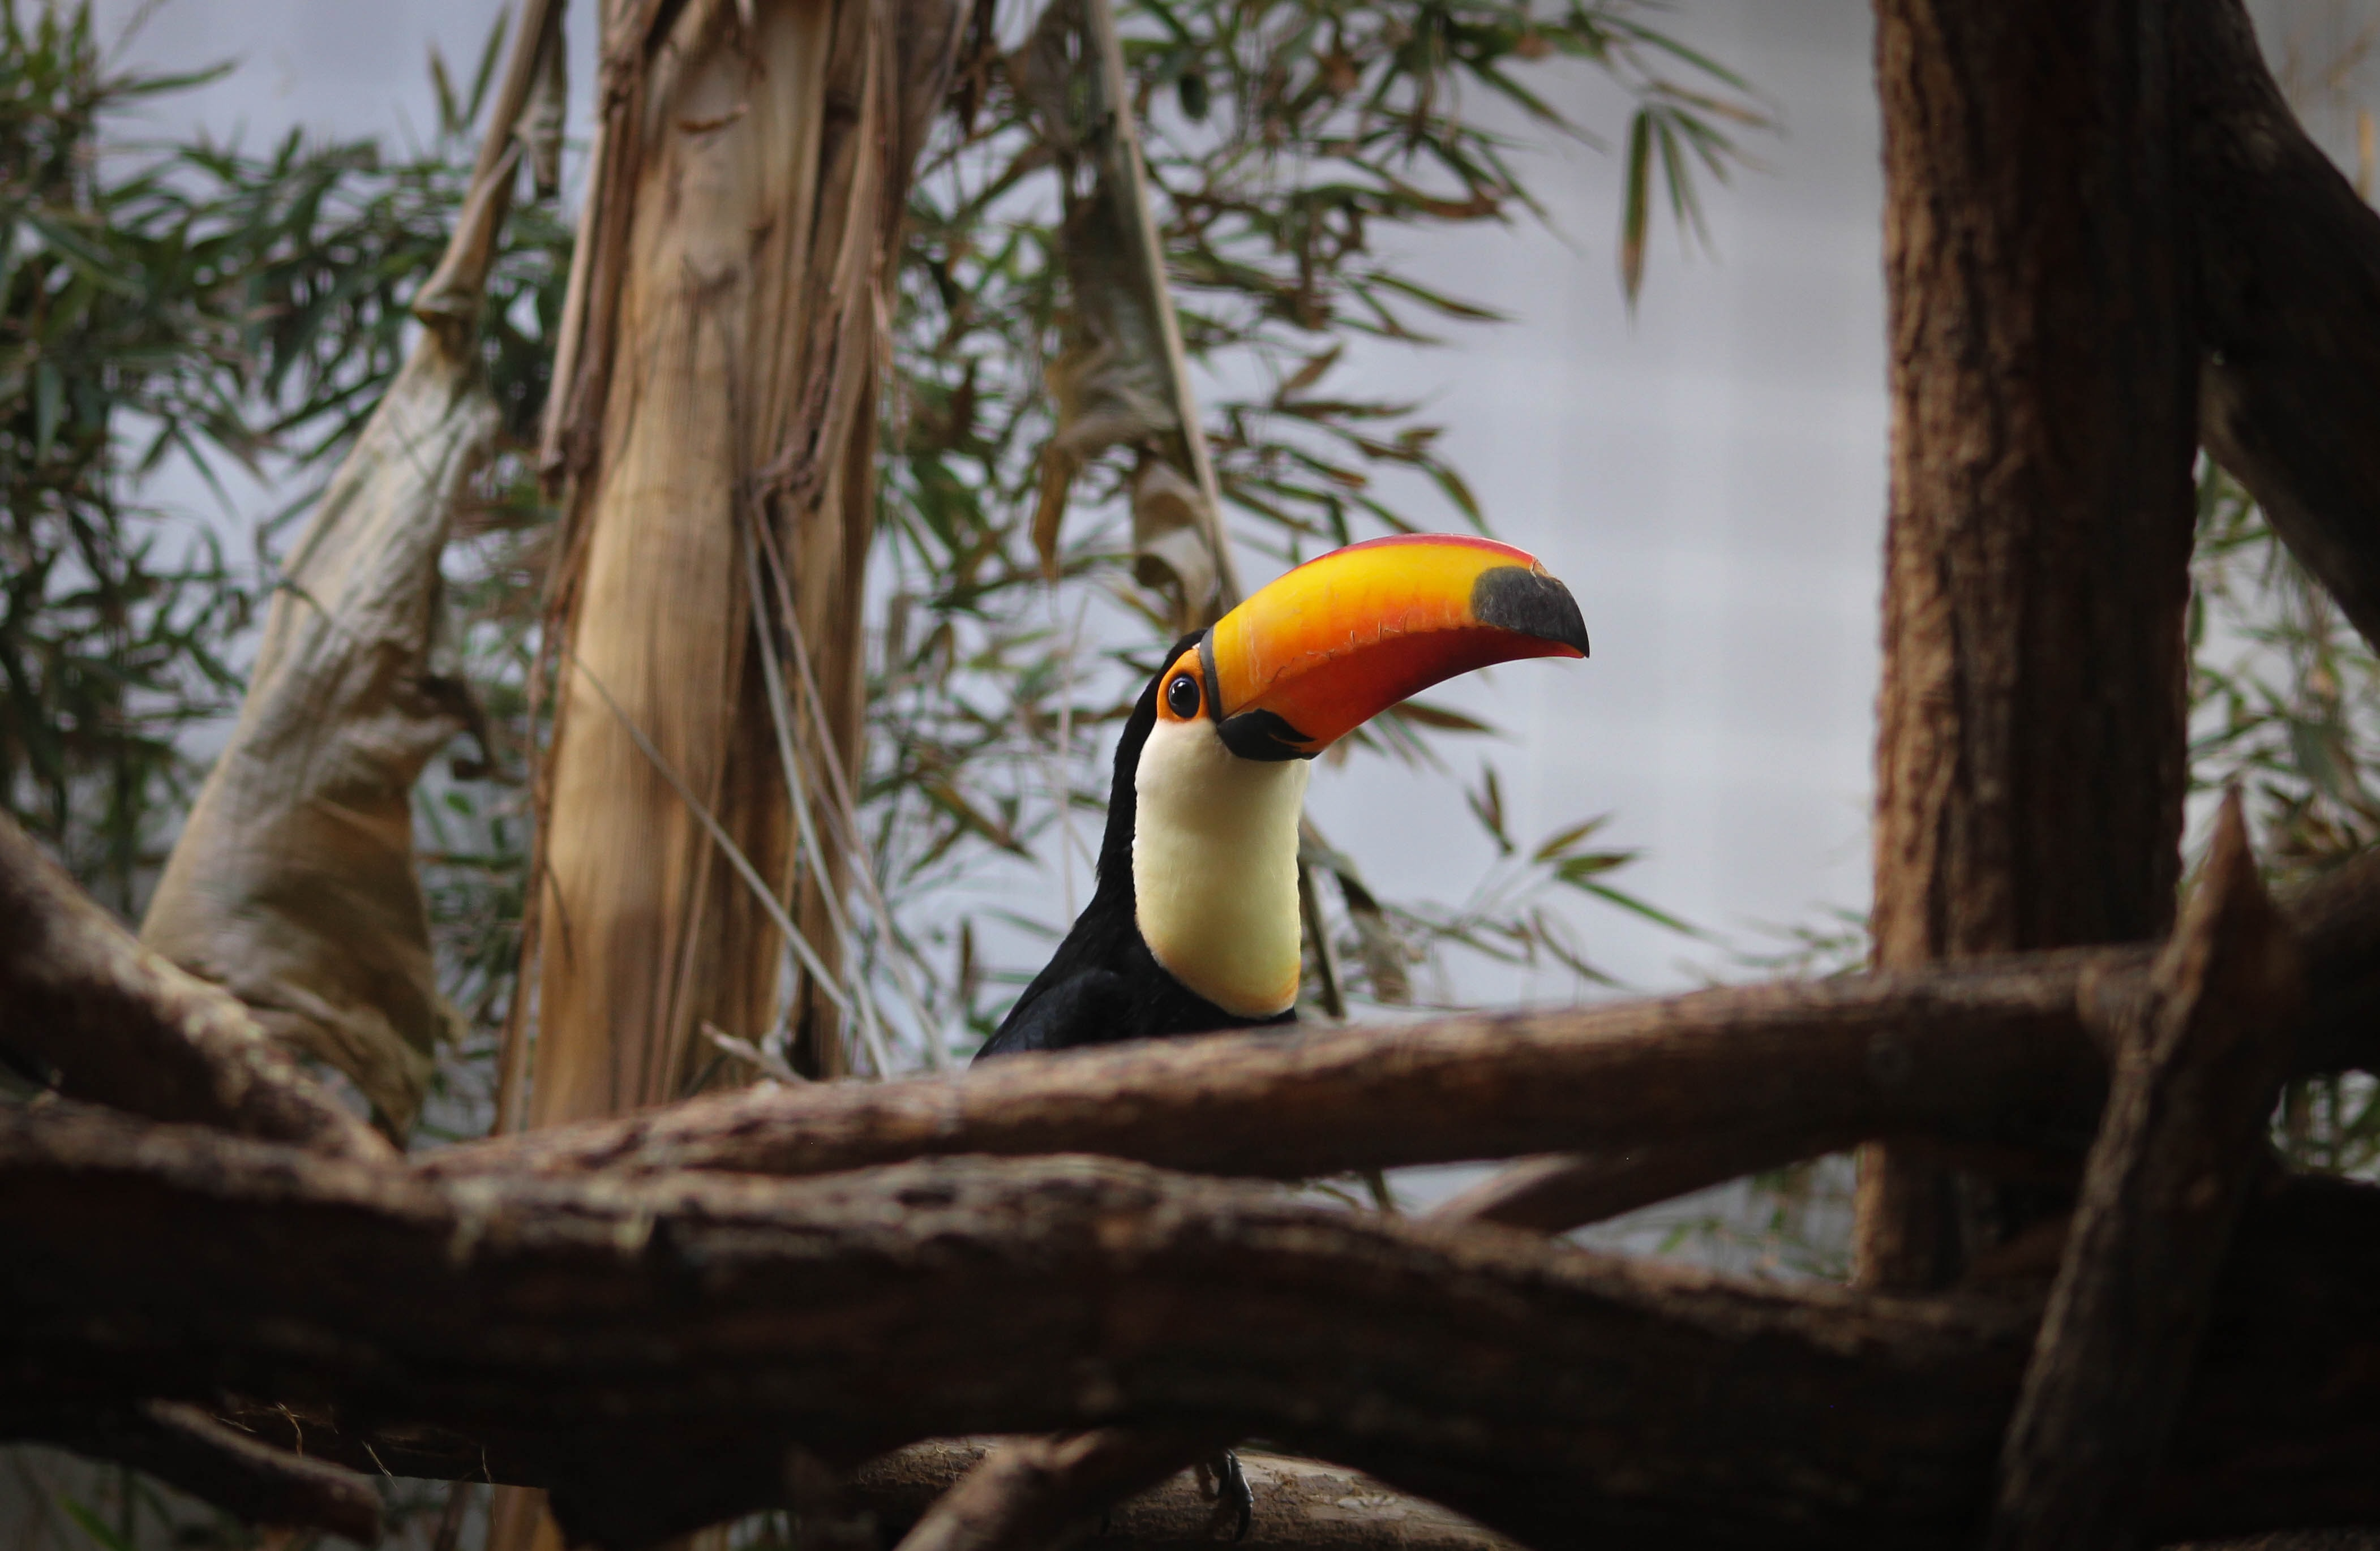 lowlight photography of toucan perching on tree branch